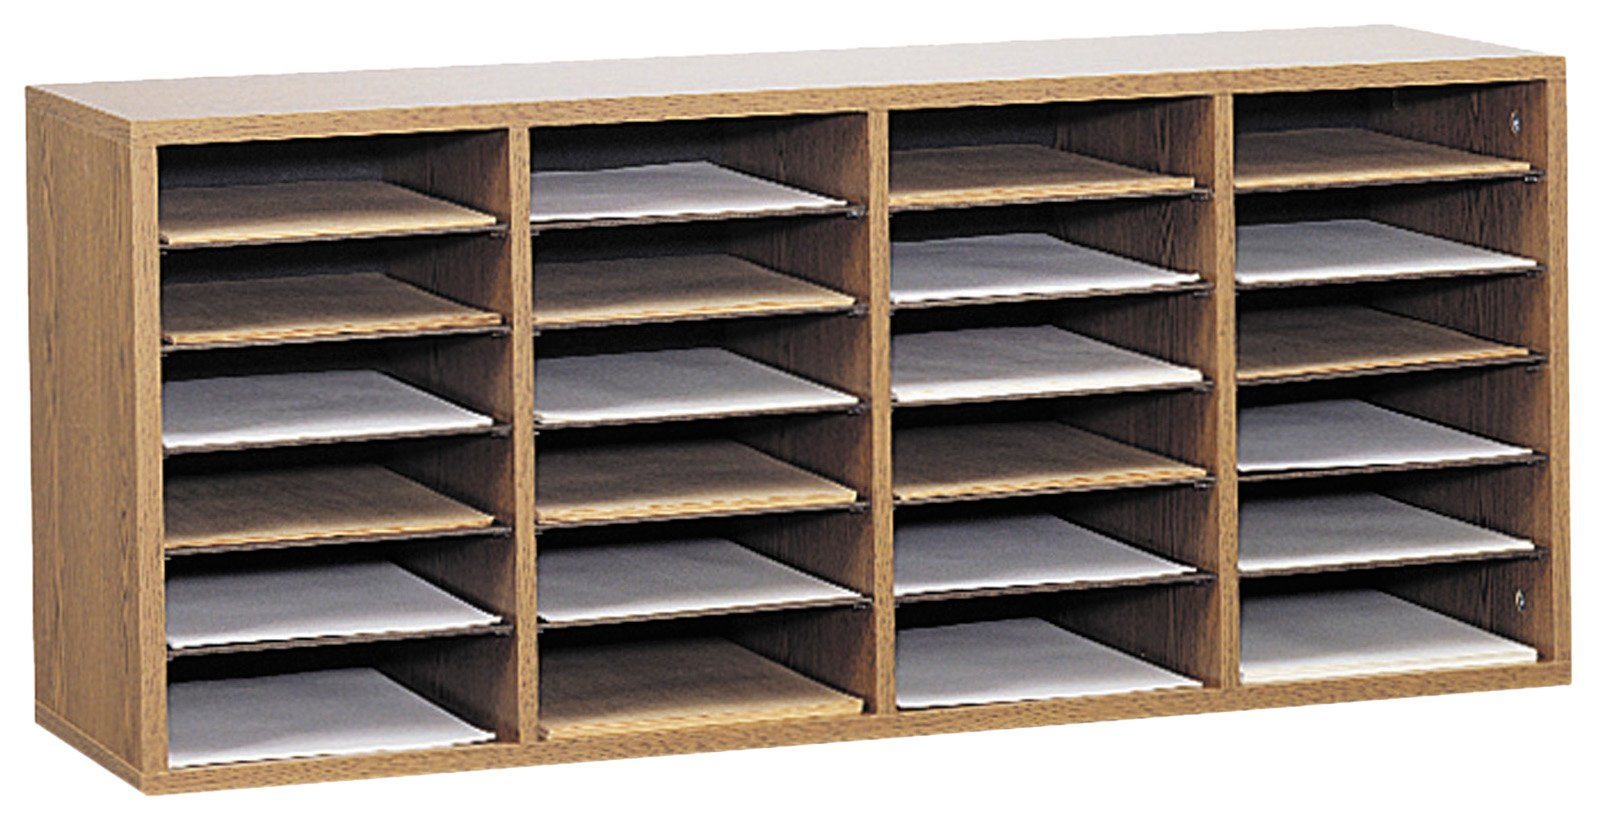 Safco Products Wood Adjustable Literature Organizer, 24 Compartment, 9423MO, Medium Oak, Durable Construction, Removable Shelves, Stackable